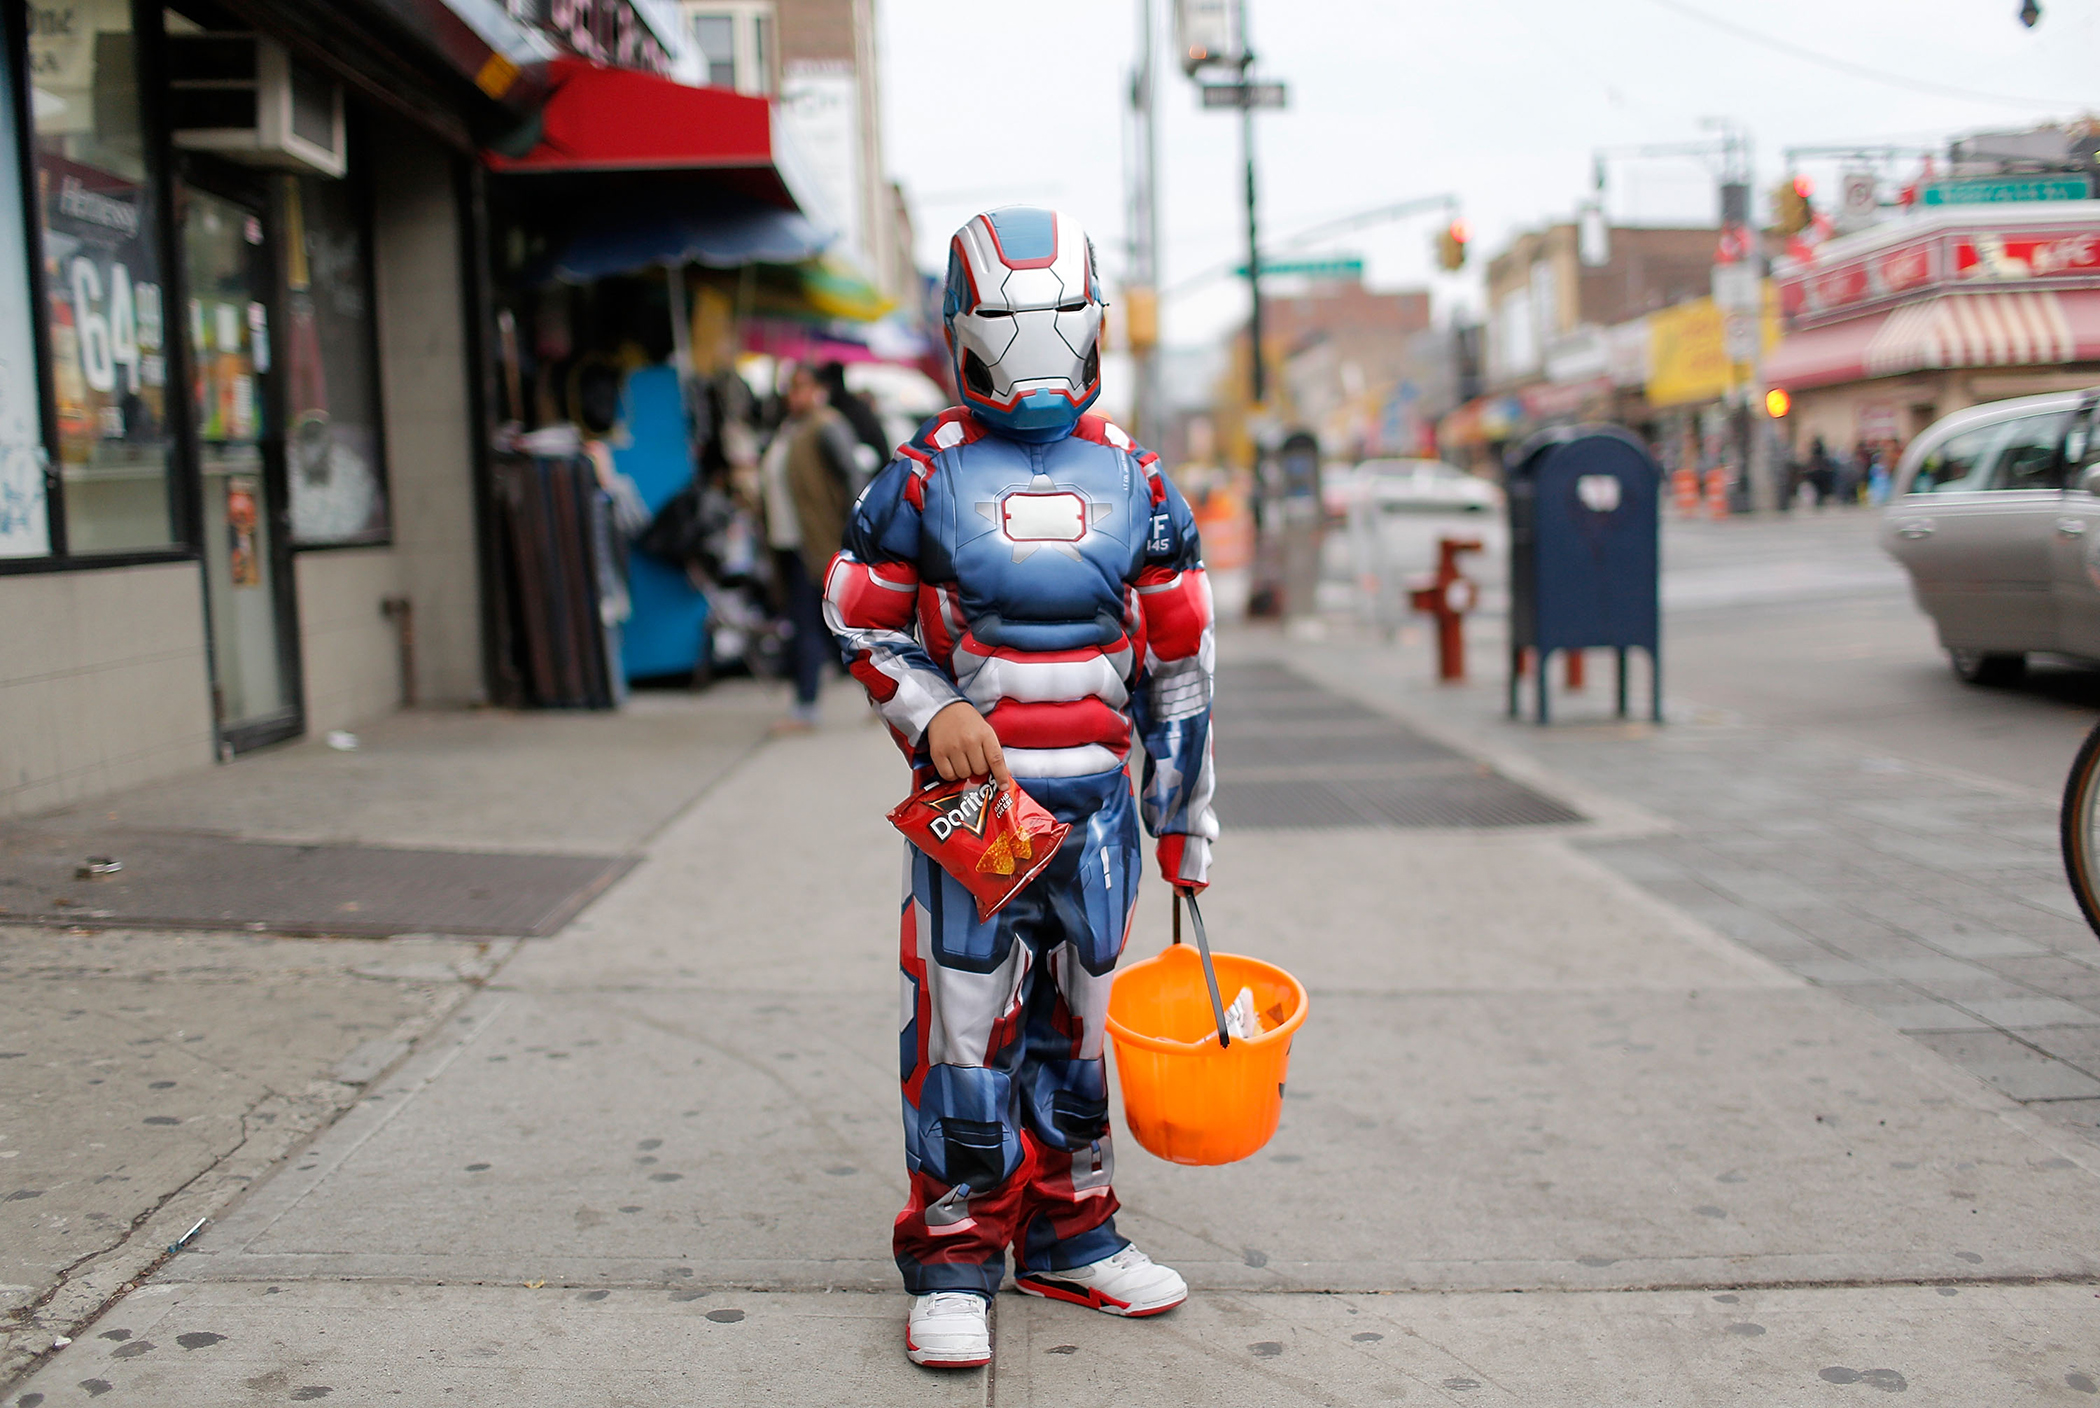 Ethan  of Bedford-Stuyvesant poses for a photo as he  Trick or Treats  in Bedford-Stuyvesant, Brooklyn on October 31, 2013 in New York City.